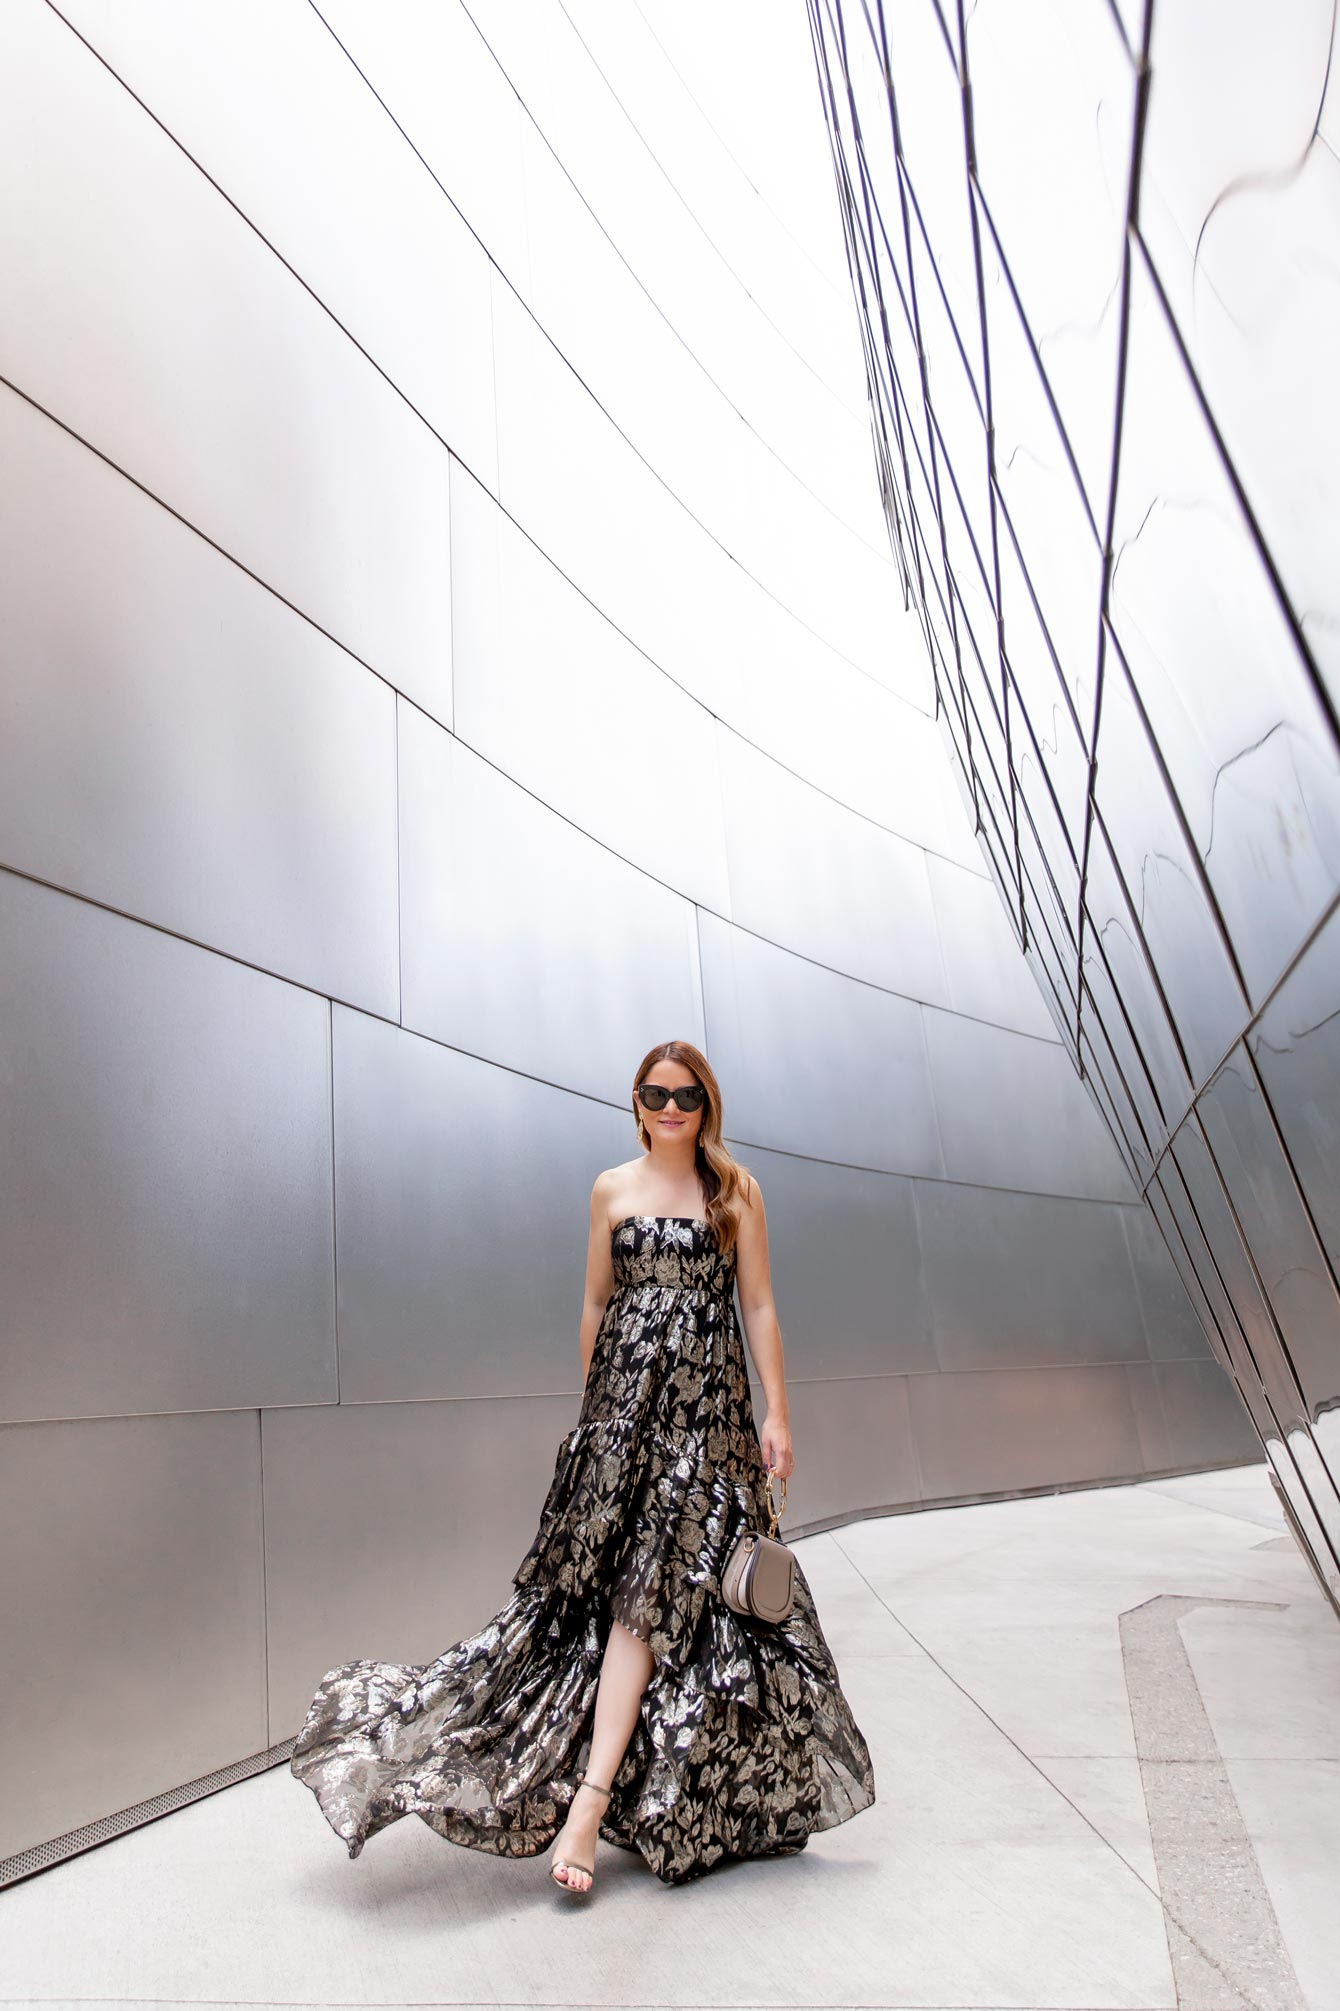 Walt Disney Concert Hall Blogger Photoshoot